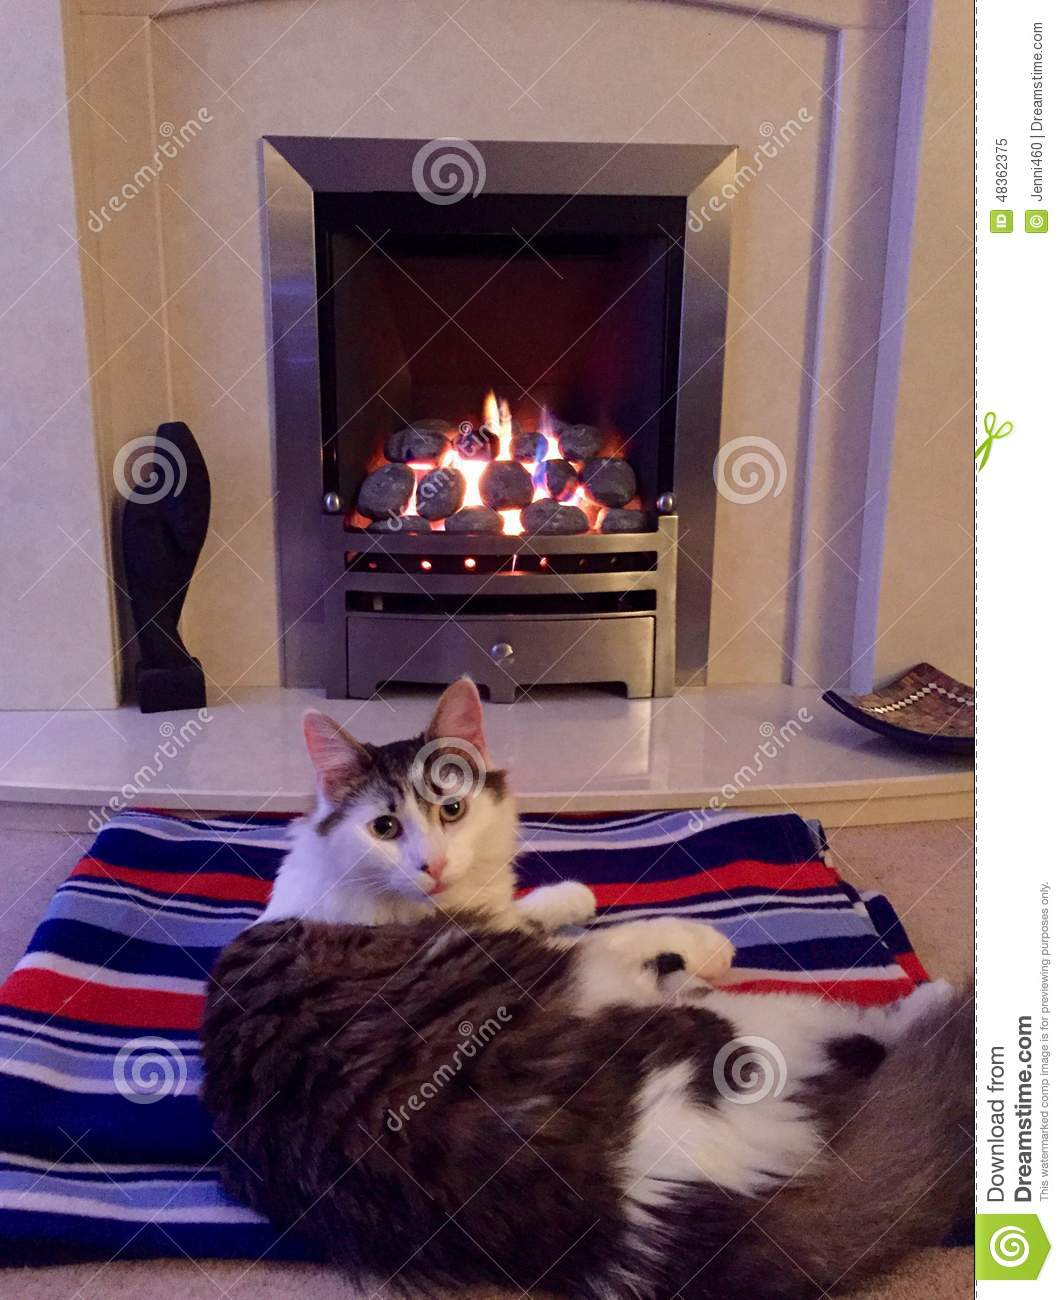 Cat on a rug in front of a fire